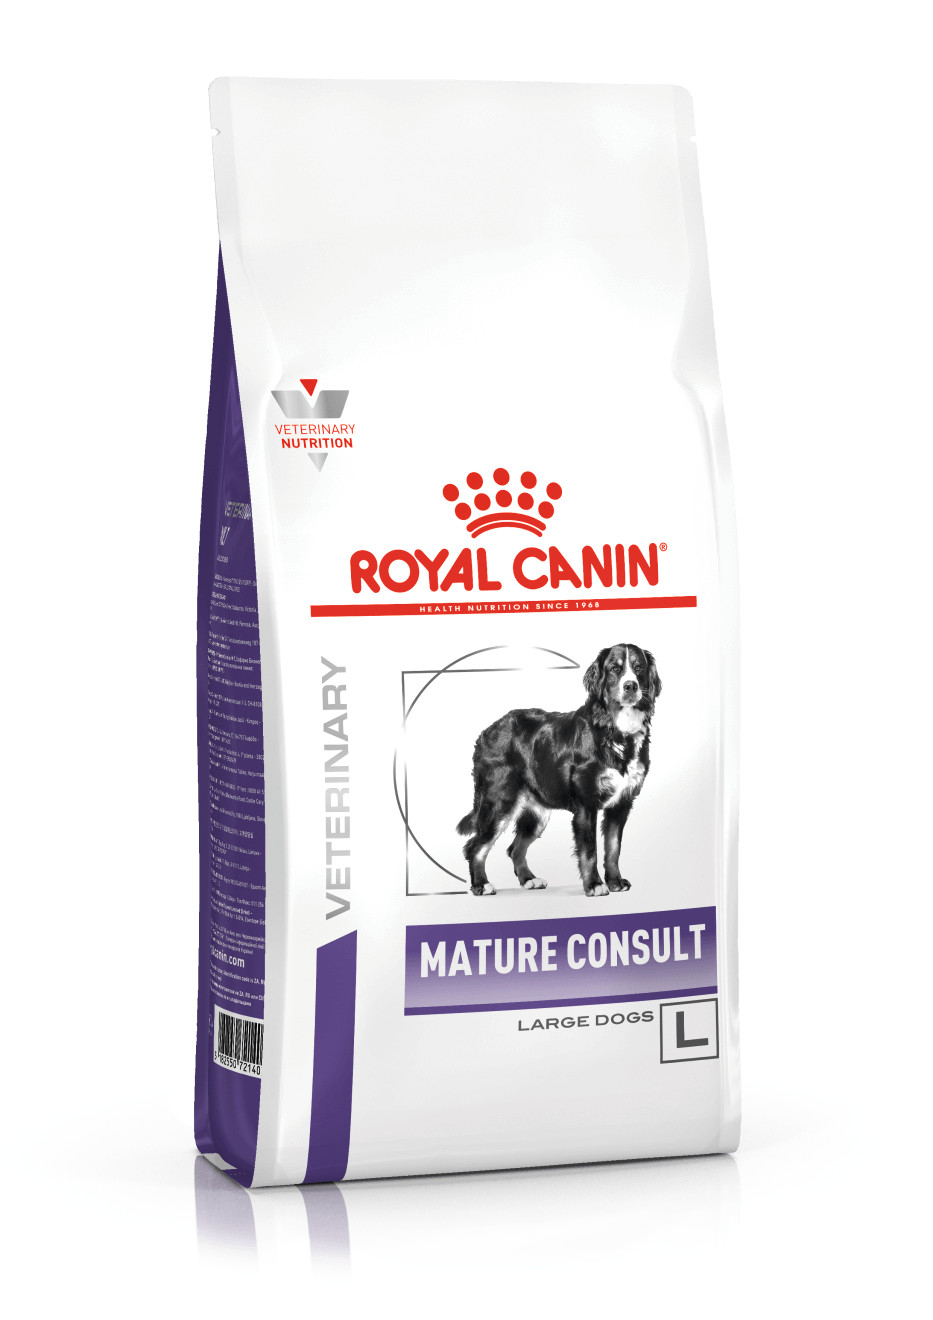 Royal Canin Veterinary Mature Consult Large Dogs pour chien